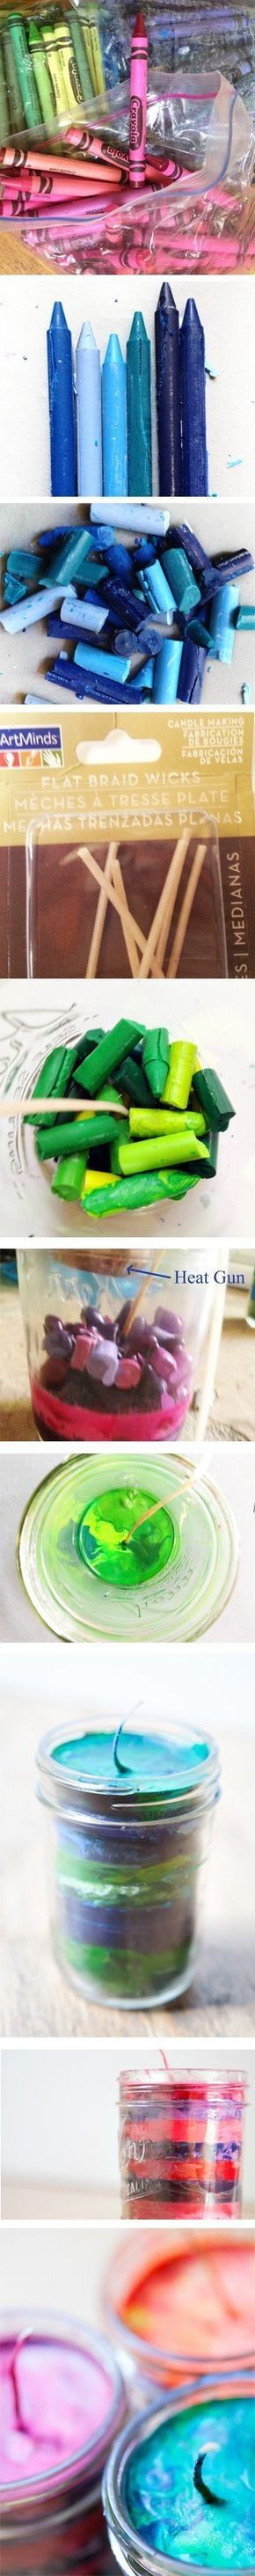 DIY Crayon Candles Pictures, Photos, and Images for Facebook, Tumblr, Pinterest, and Twitter